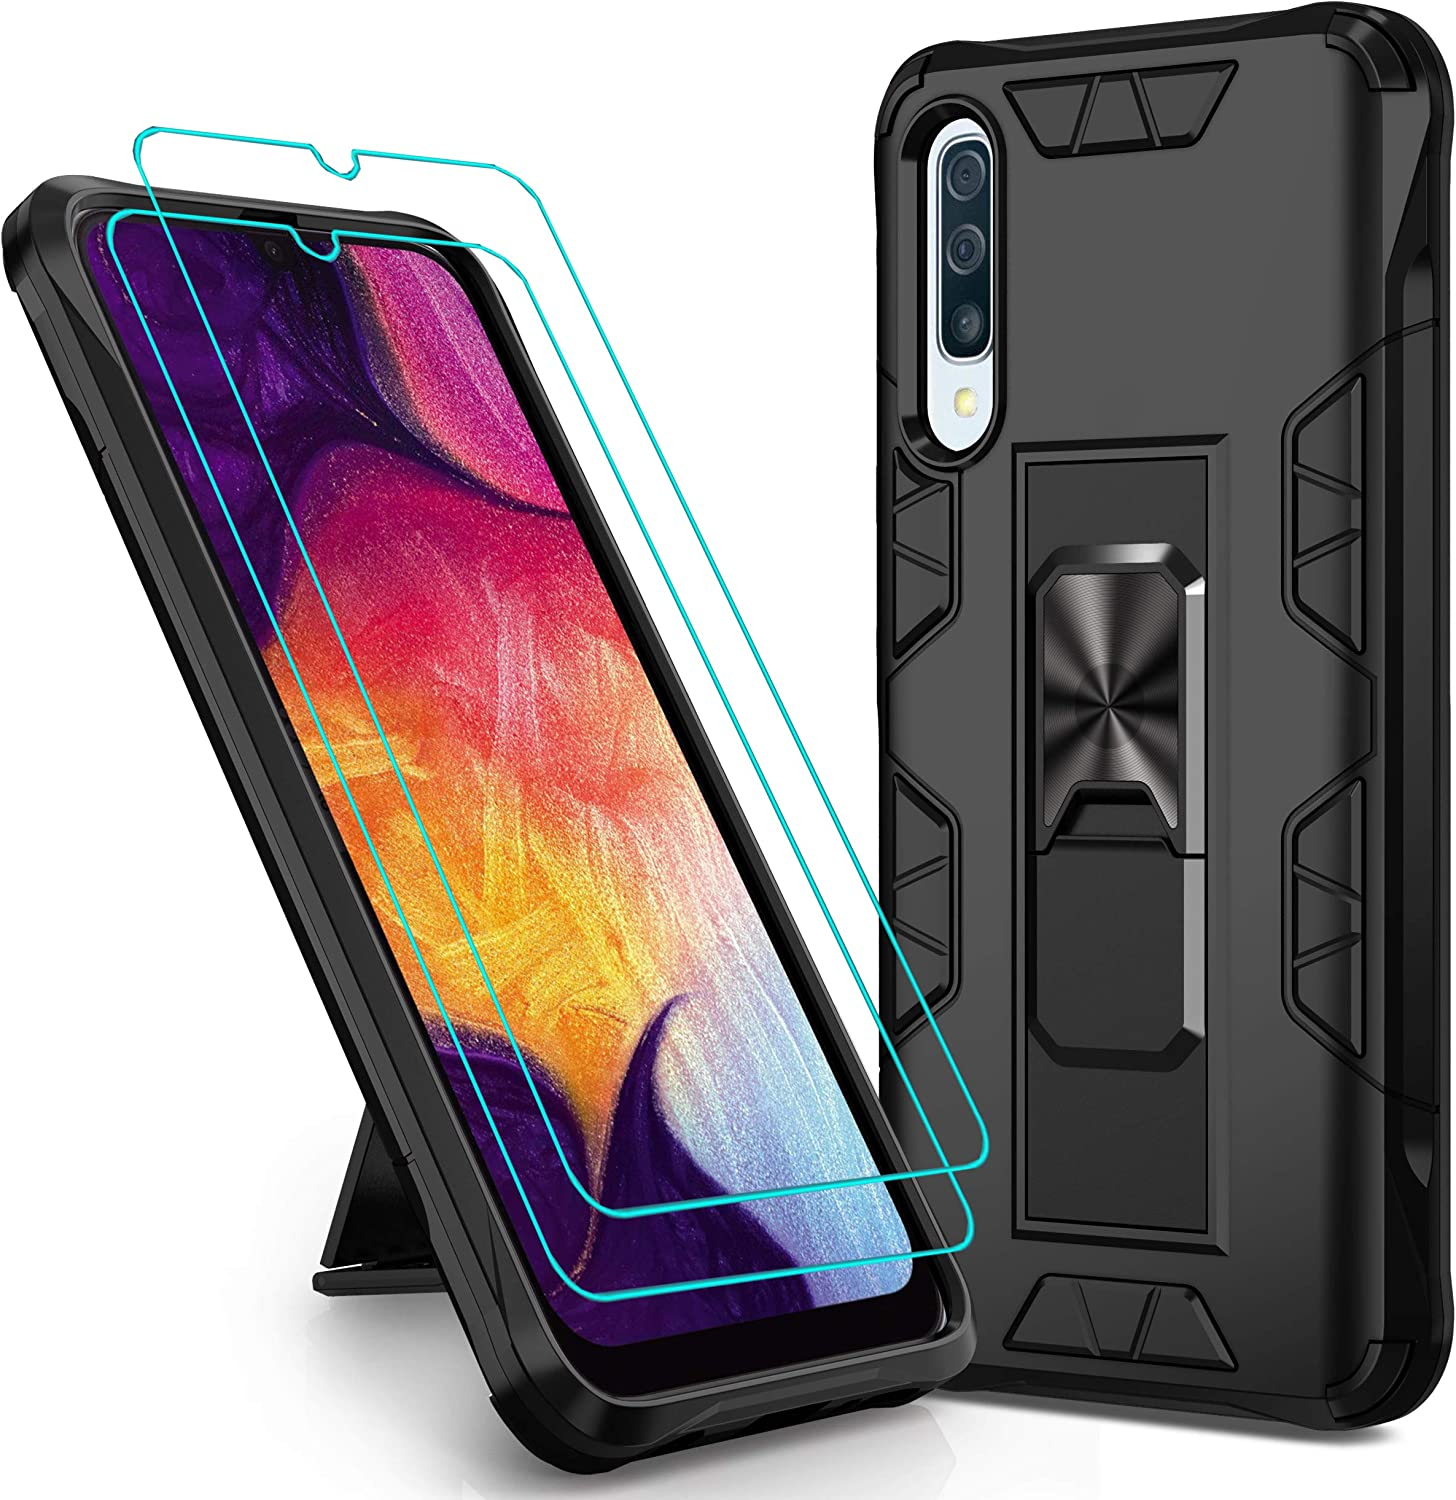 Mieziba Compatible with Galaxy A50/A50s/A30s Case with Screen Protector [2 Pack],[ Military Grade ] 15ft. Drop Tested Protective Case [Kickstand] Compatibl Galaxy A50/A50s/A30s,Black